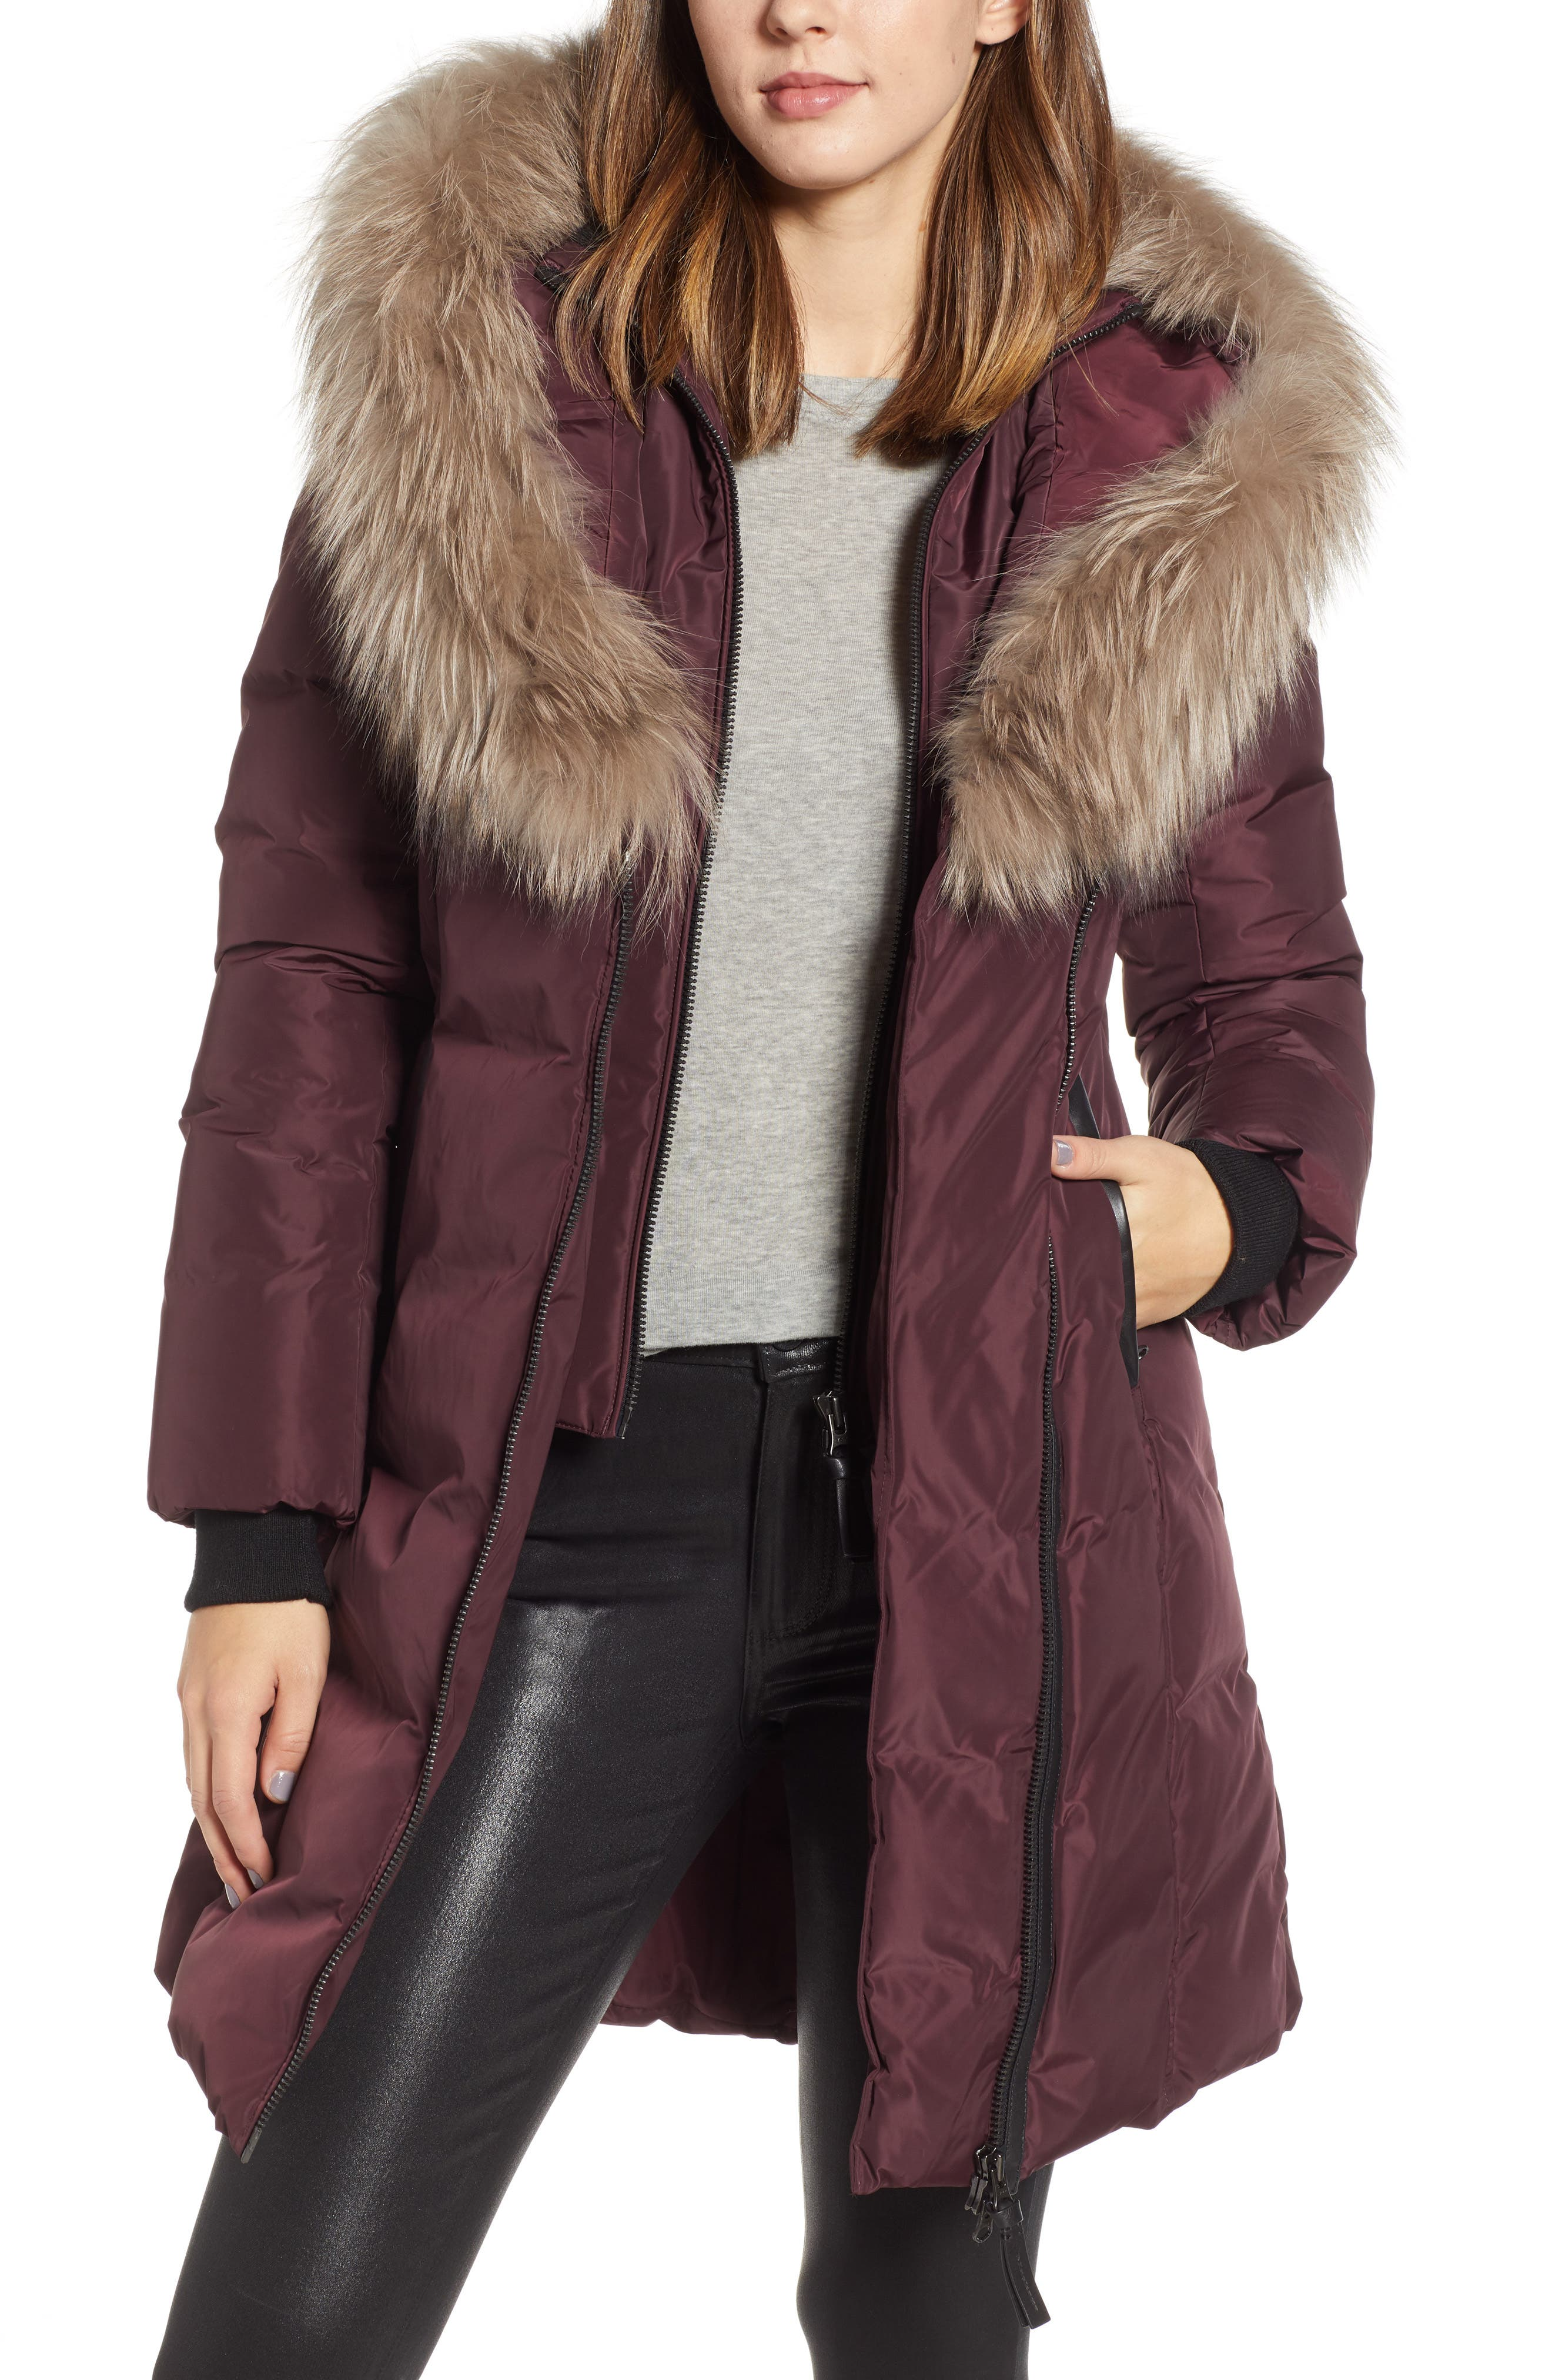 Mackage 800 Fill Power Down Coat With Genuine Fox Fur Trim, Burgundy